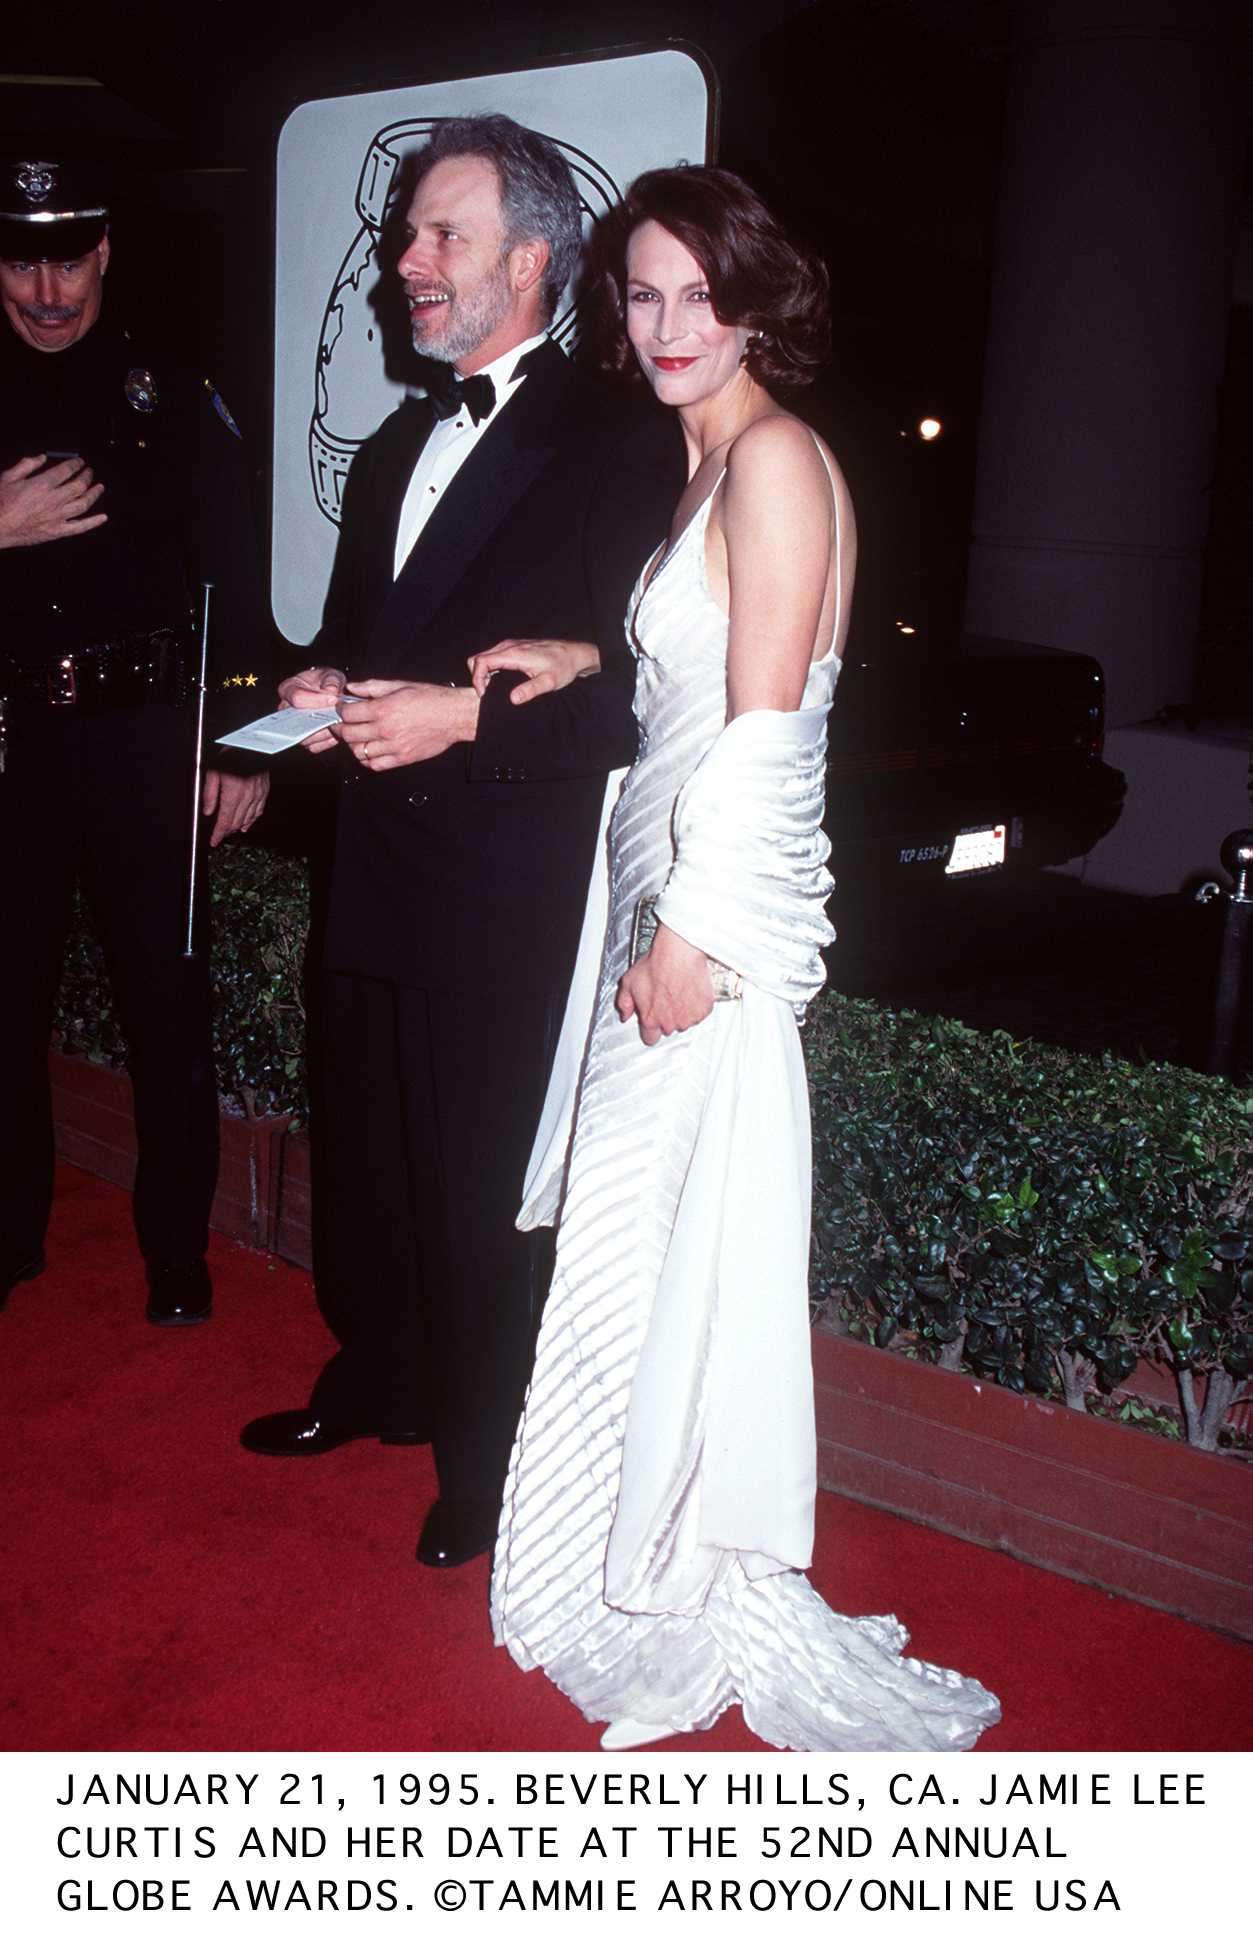 Jamie Lee Curtis and her date at the 52nd Annual Golden Globe Awards | Image Source: Getty Images